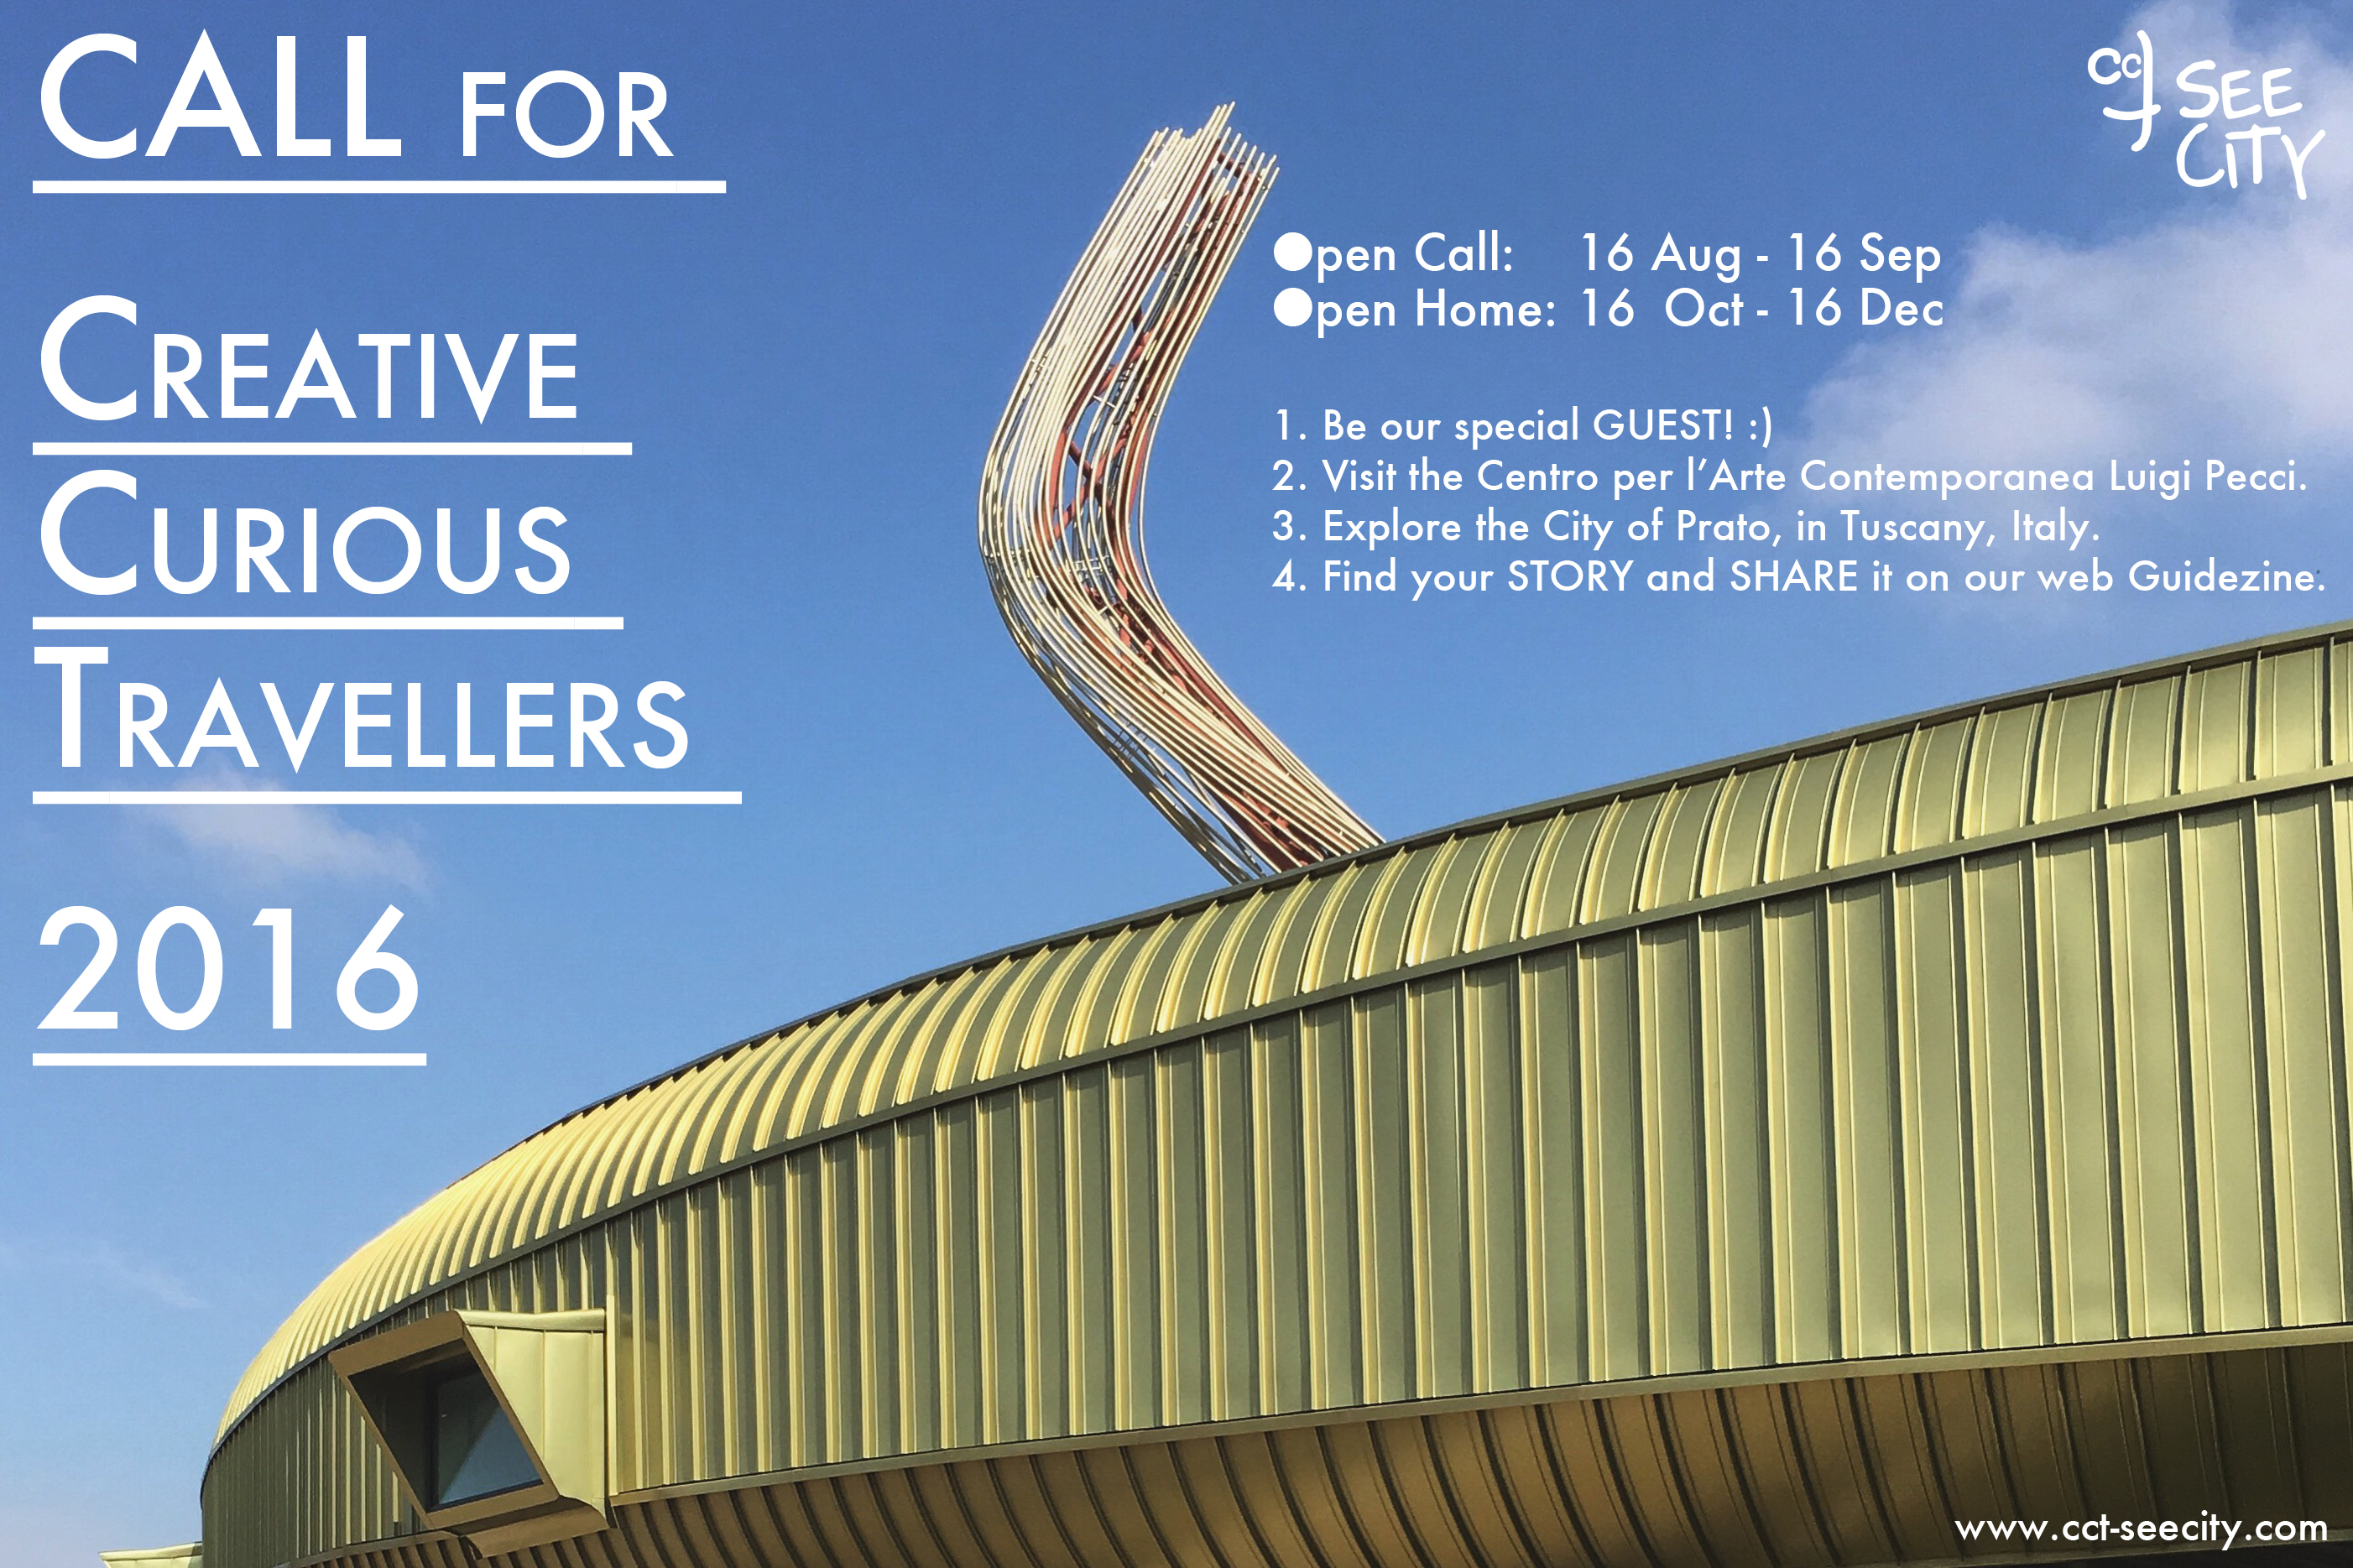 CALL for Creative Curious Travellers 2016